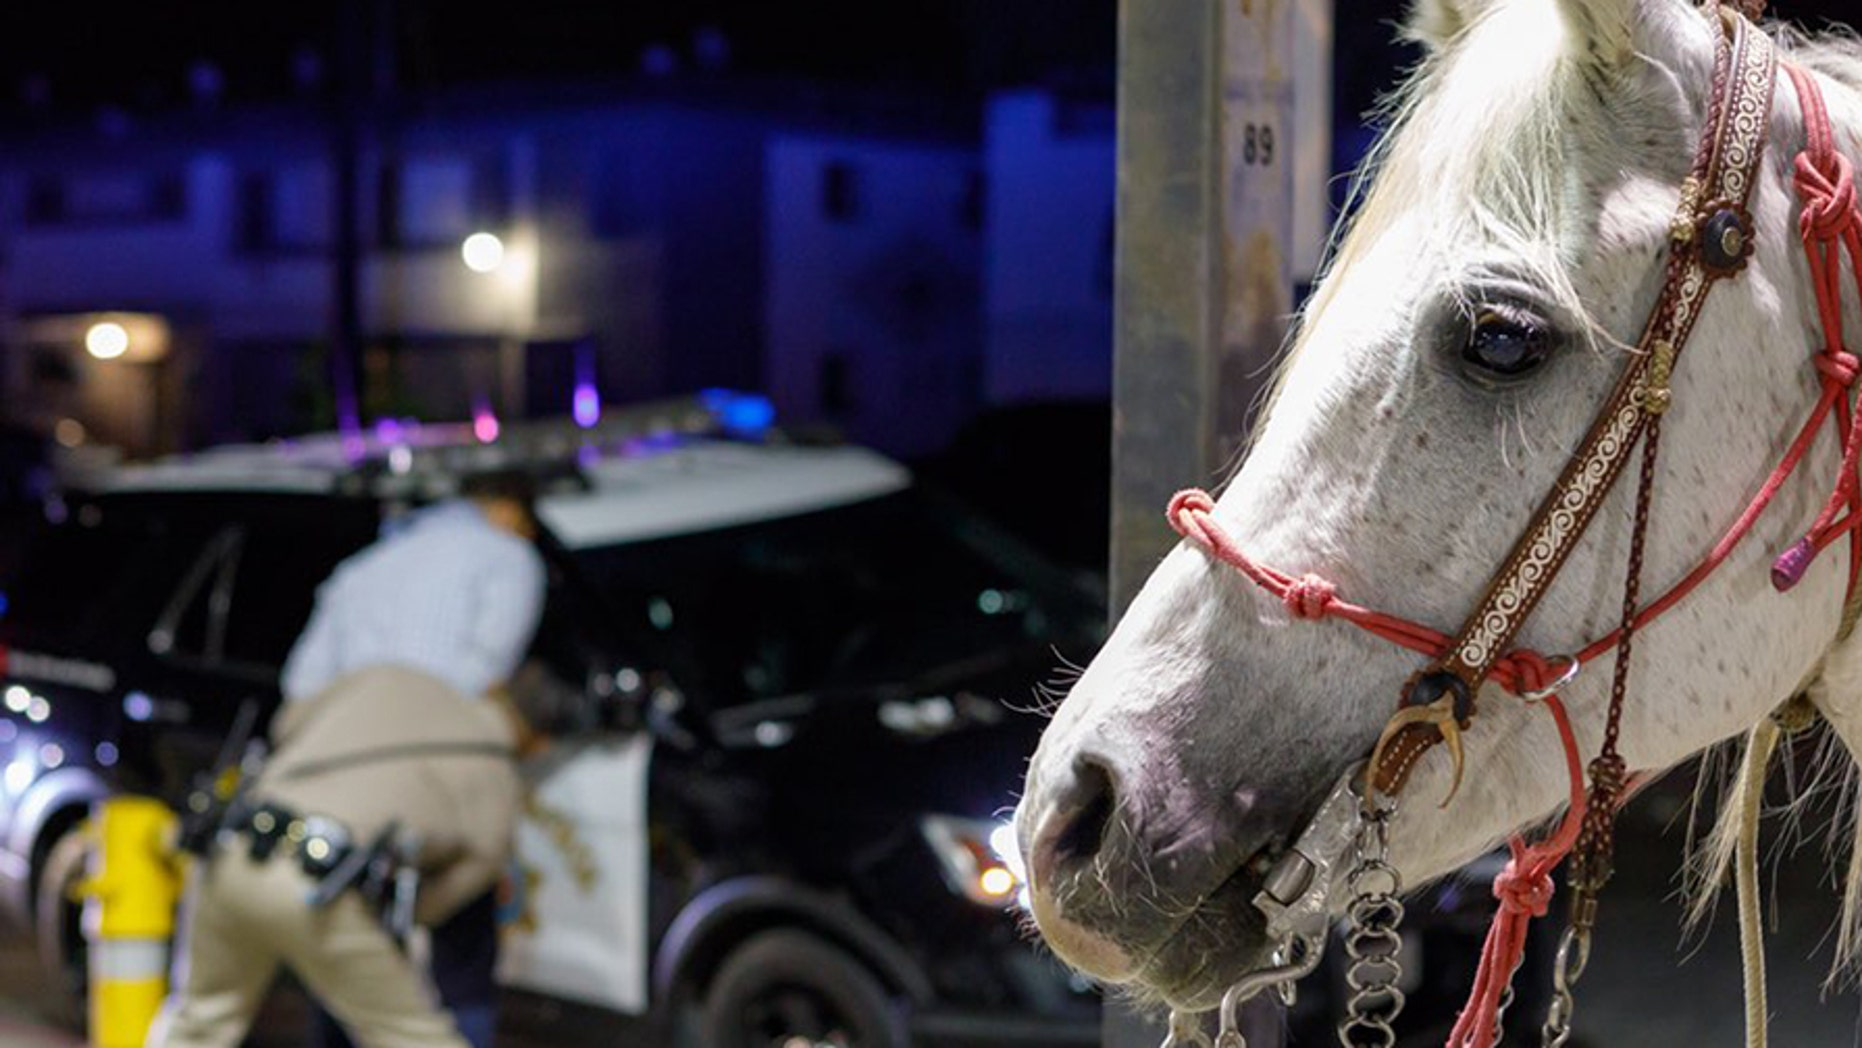 A man was arrested on a DUI charge on Saturday after he was spotted riding a horse along a busy Southern California freeway.